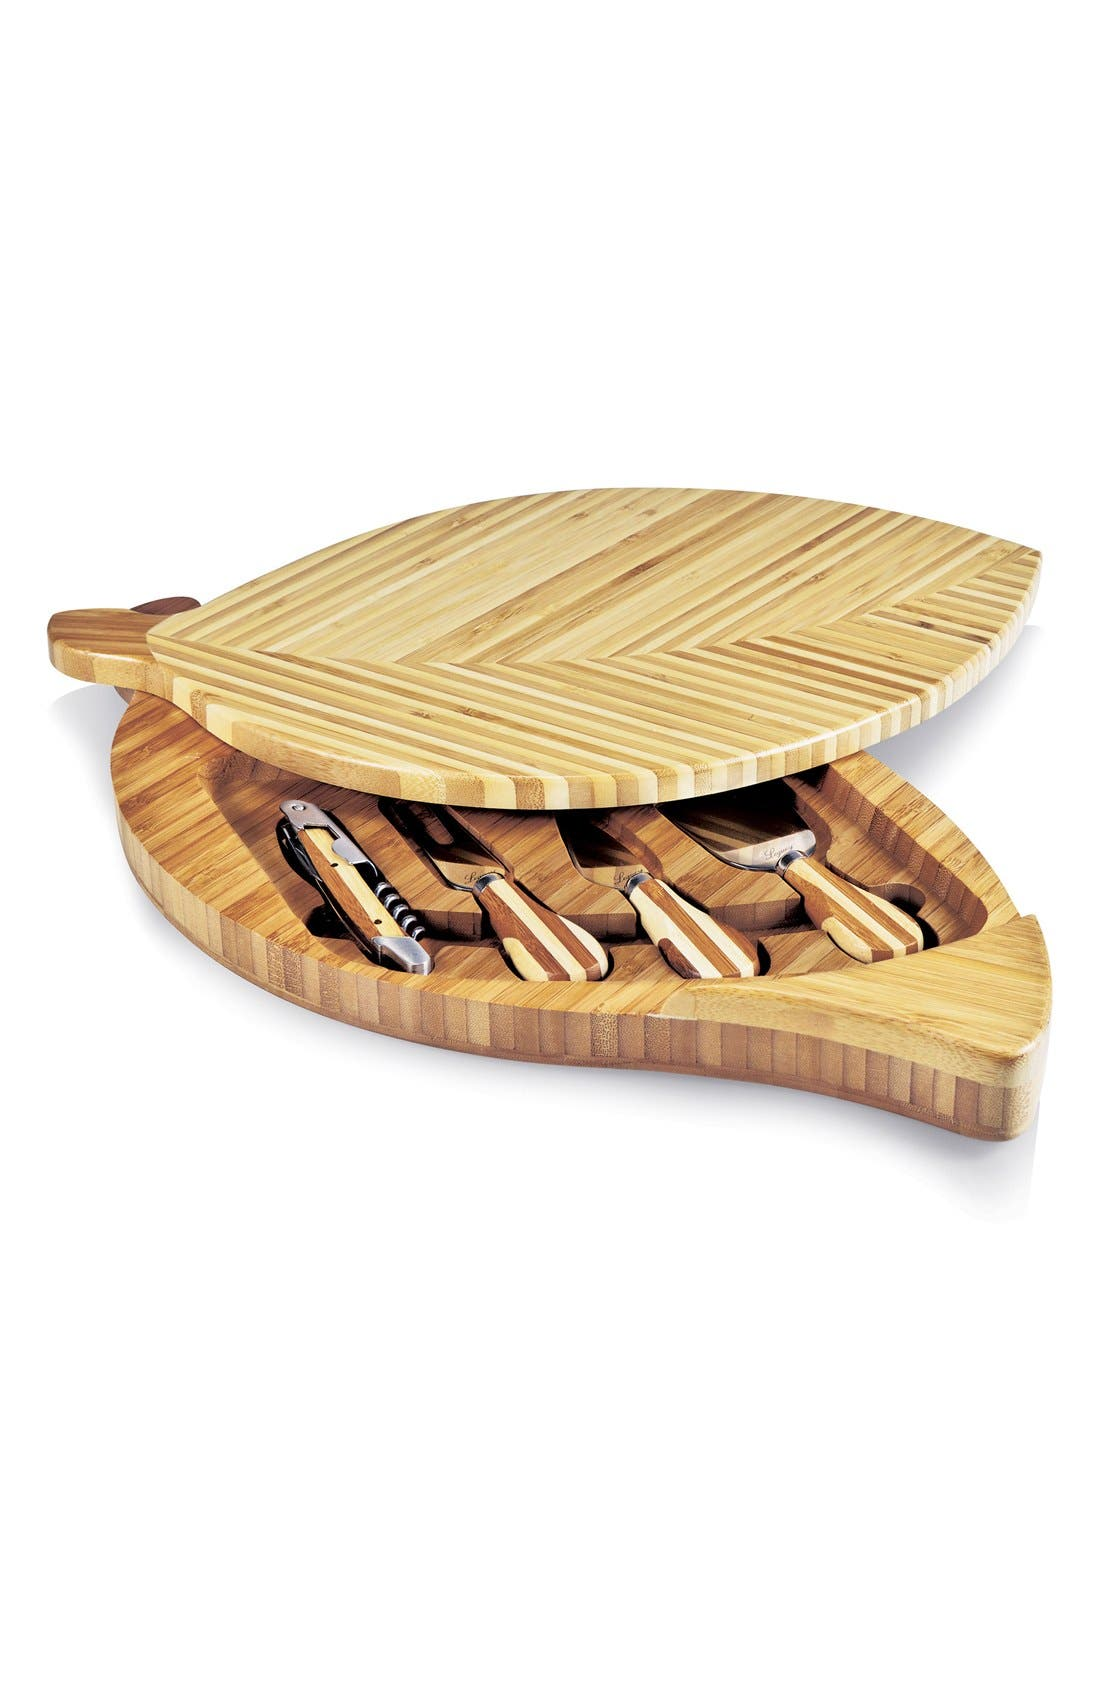 'Leaf' Cutting Board & Cheese Tools,                         Main,                         color, Brown